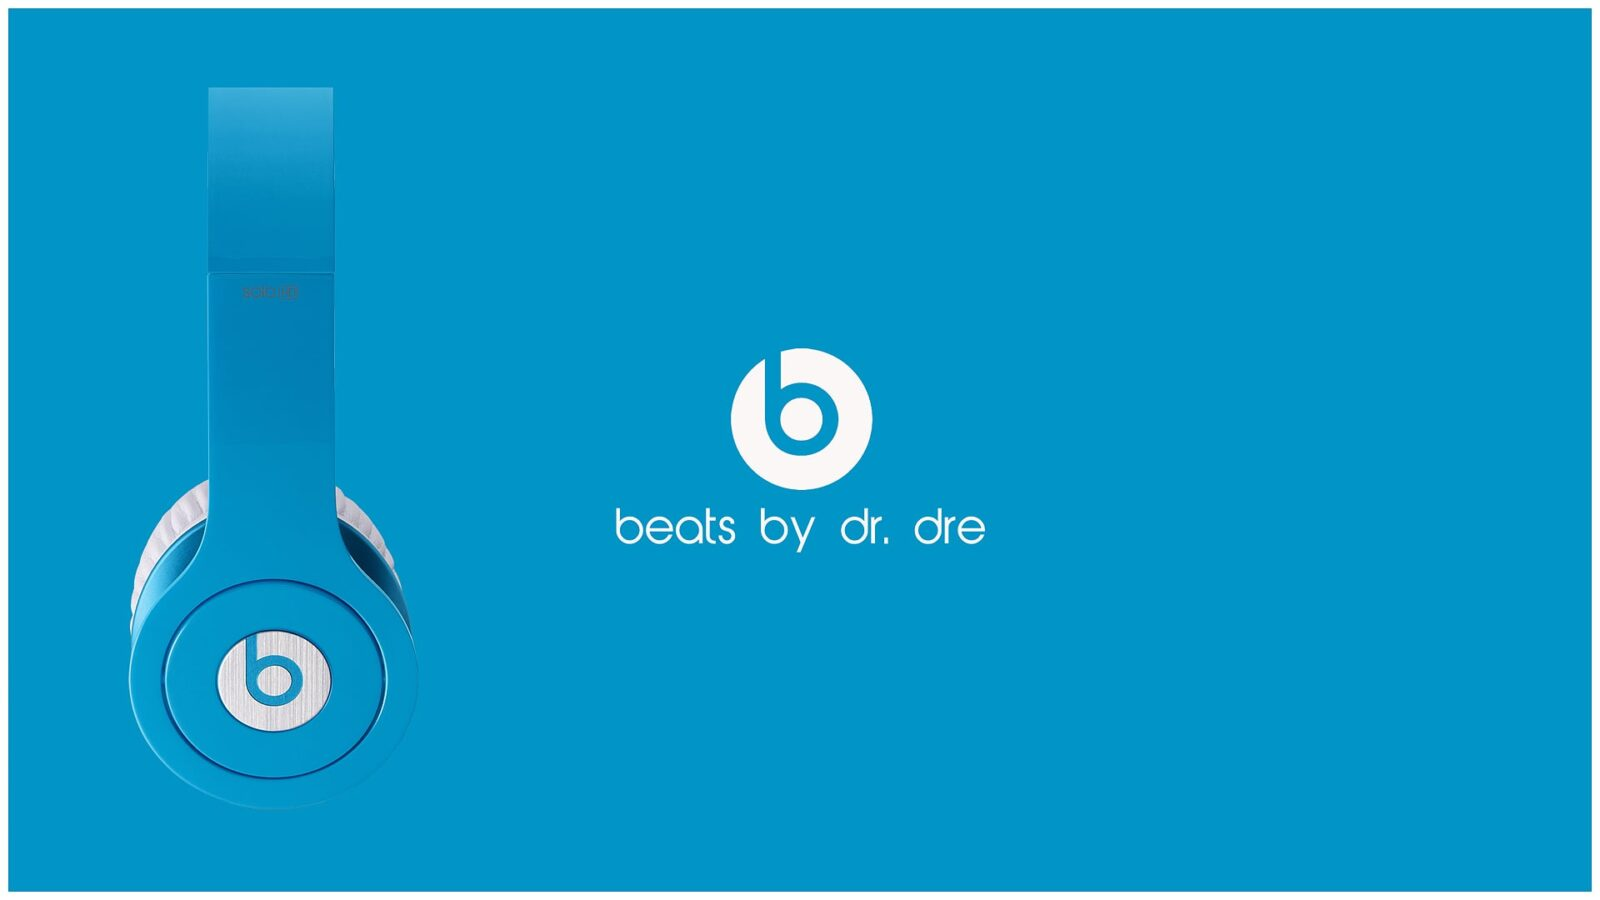 4k Cars Wallpaper Download Beats By Dr Dre Hd Wallpapers Free Download Headphones